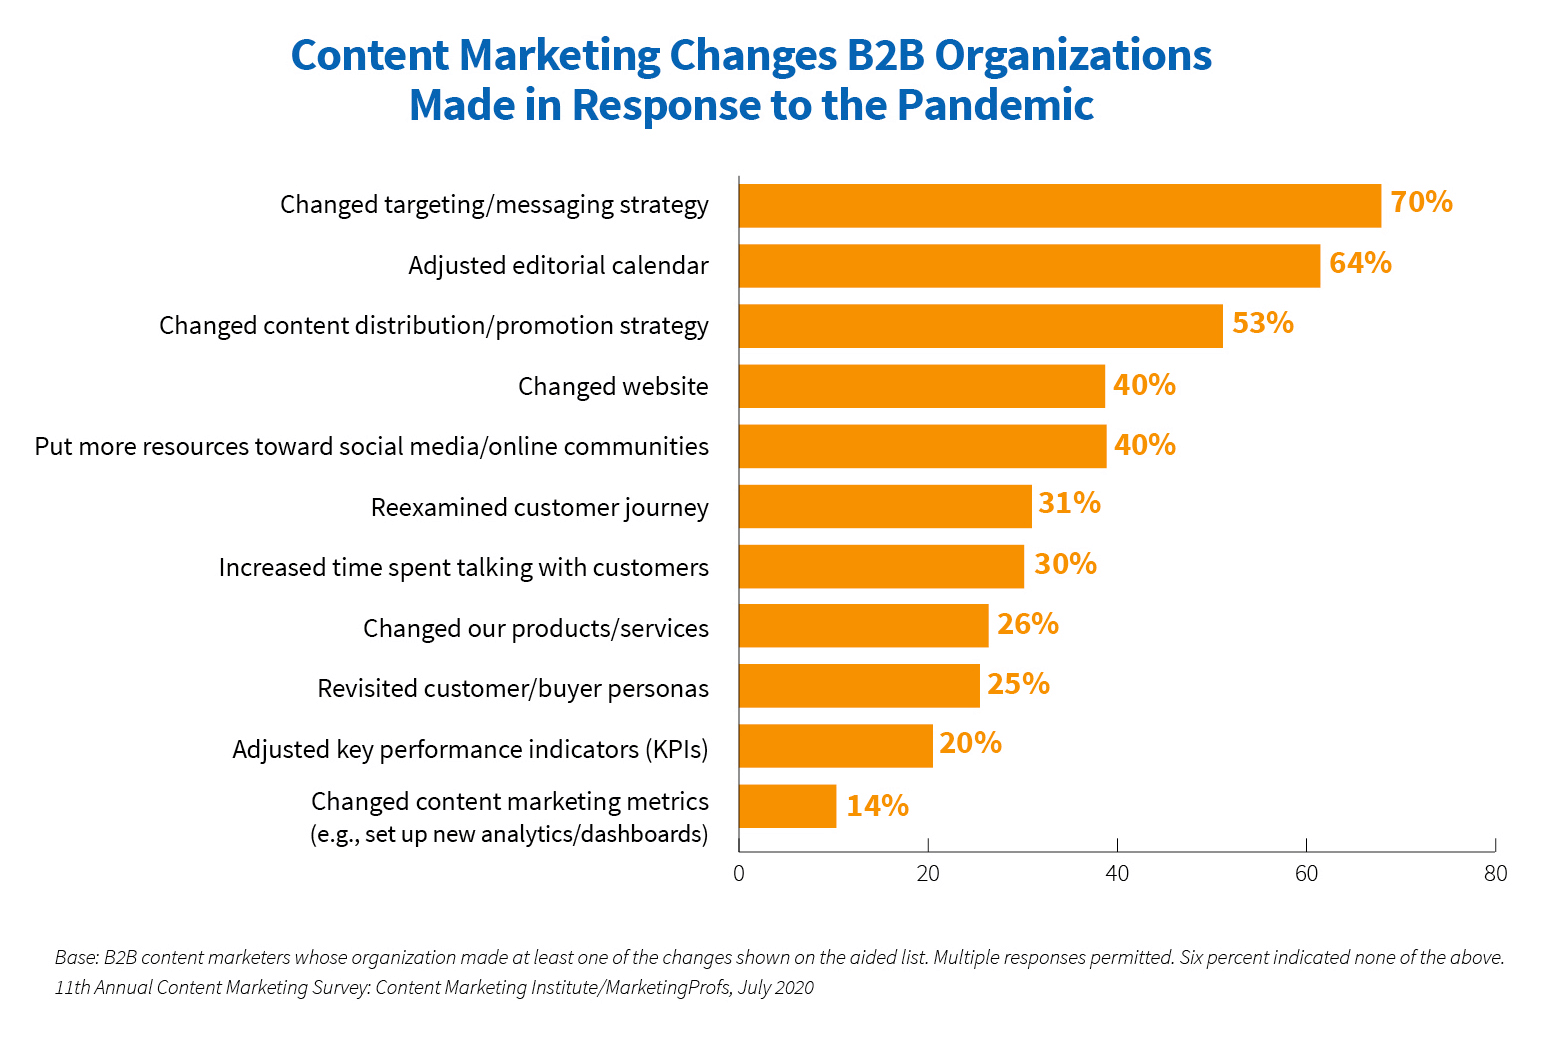 content marketing changes B2B organizations made in reponse to the pandemic